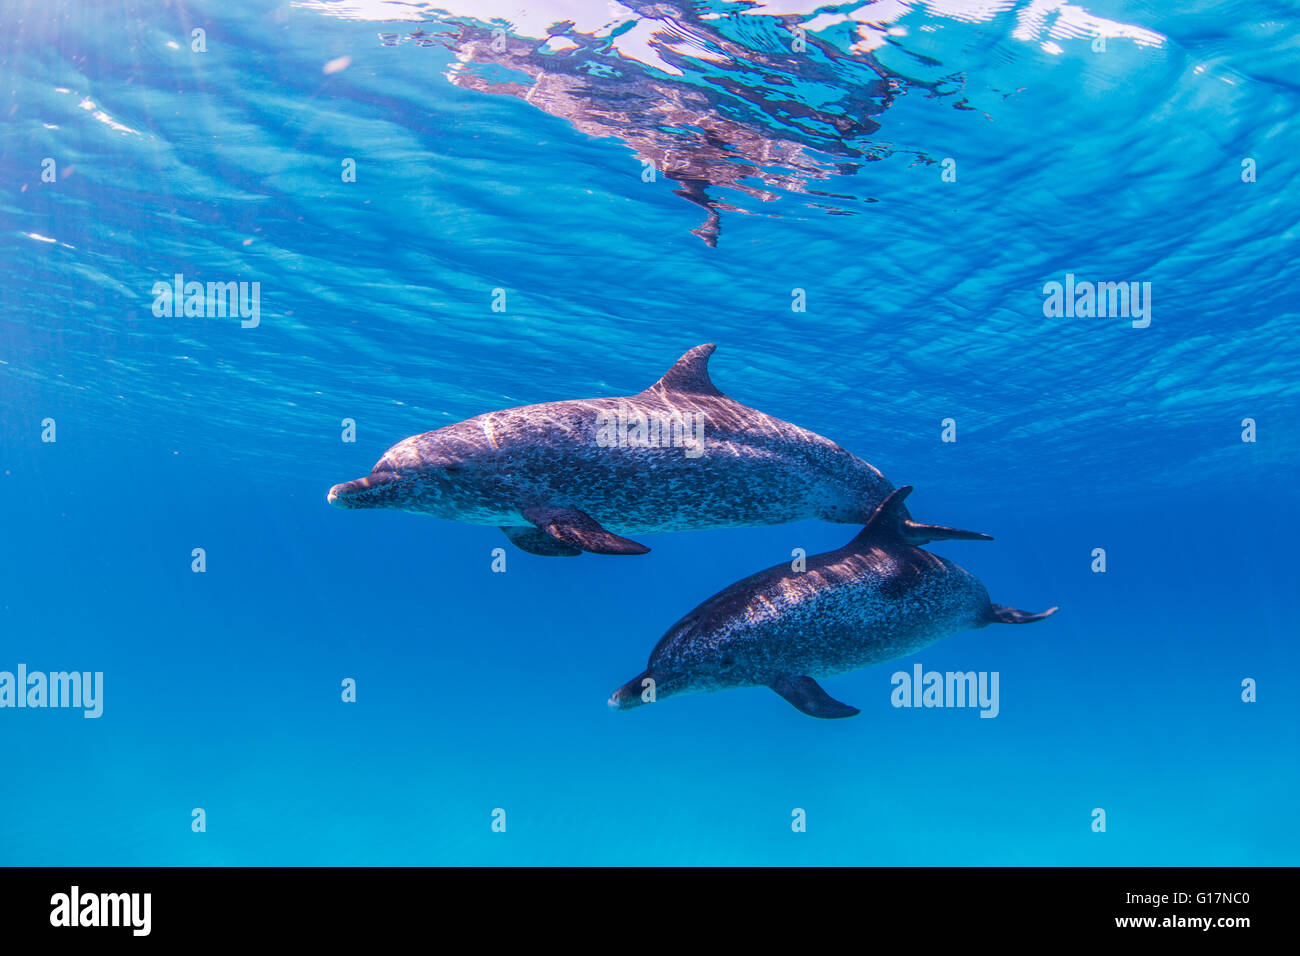 Atlantic Spotted Dolphins swimming near surface of ocean Stock Photo